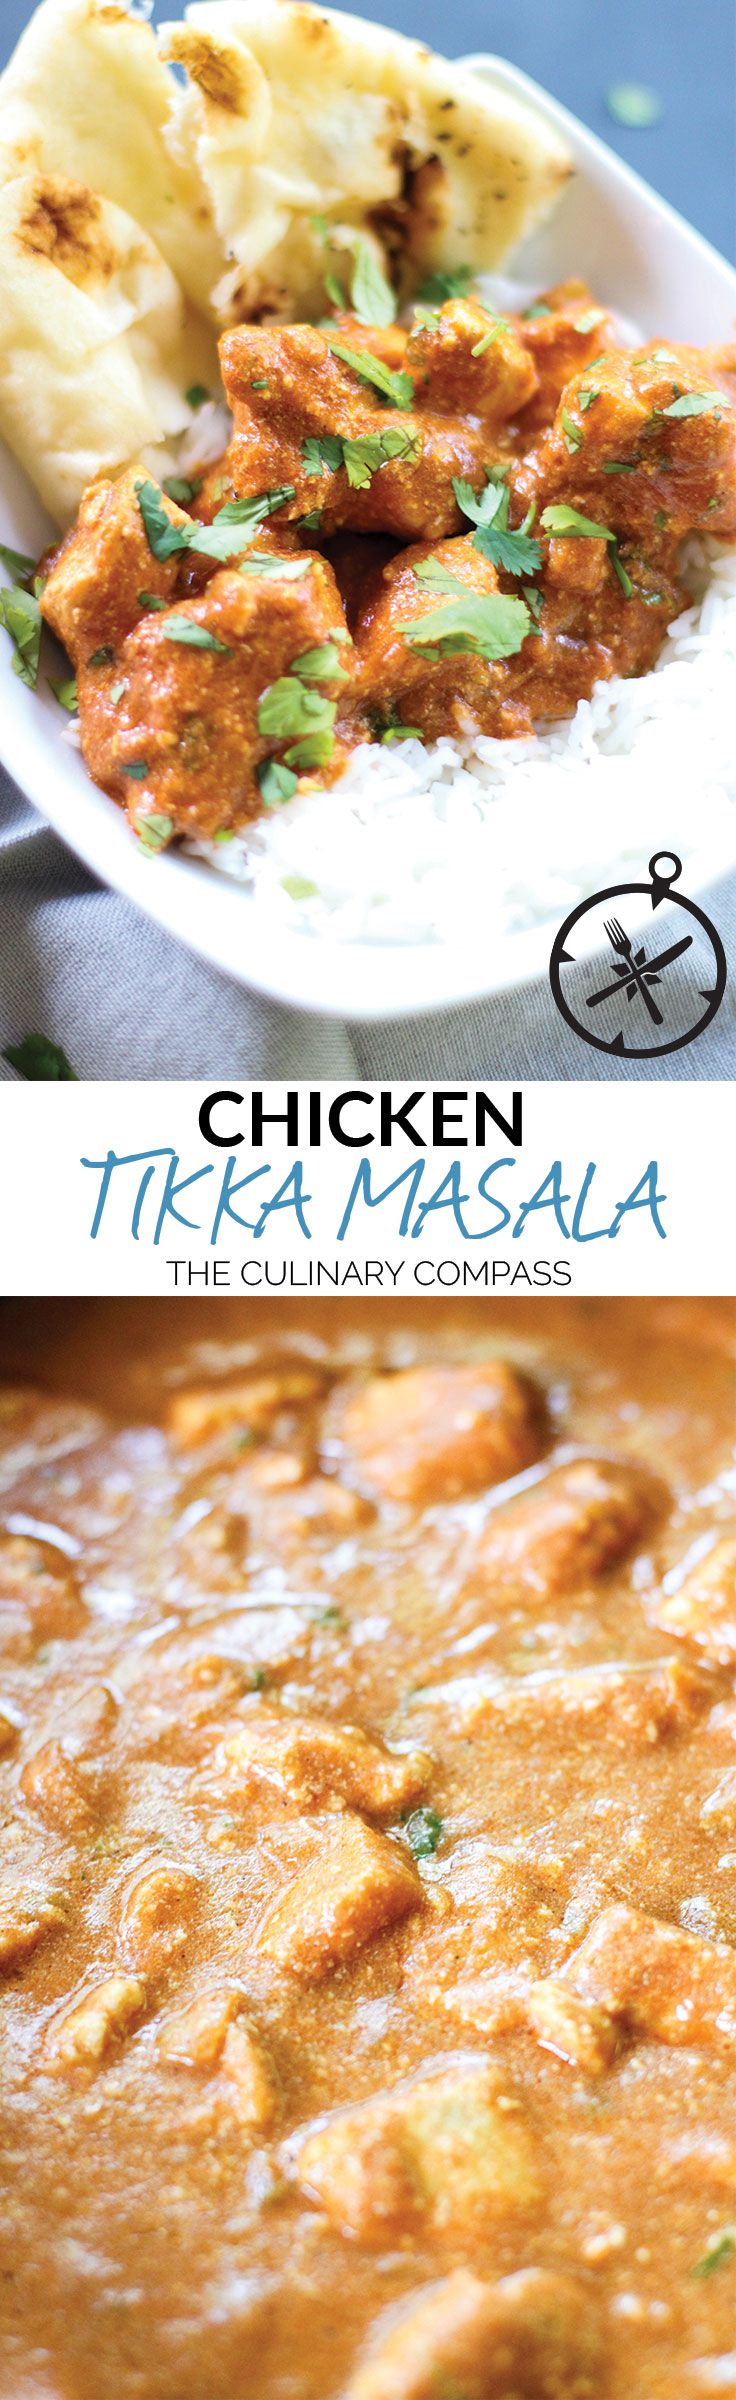 This Chicken Tikka Masala is a flavorful and easy meal even for weeknights!